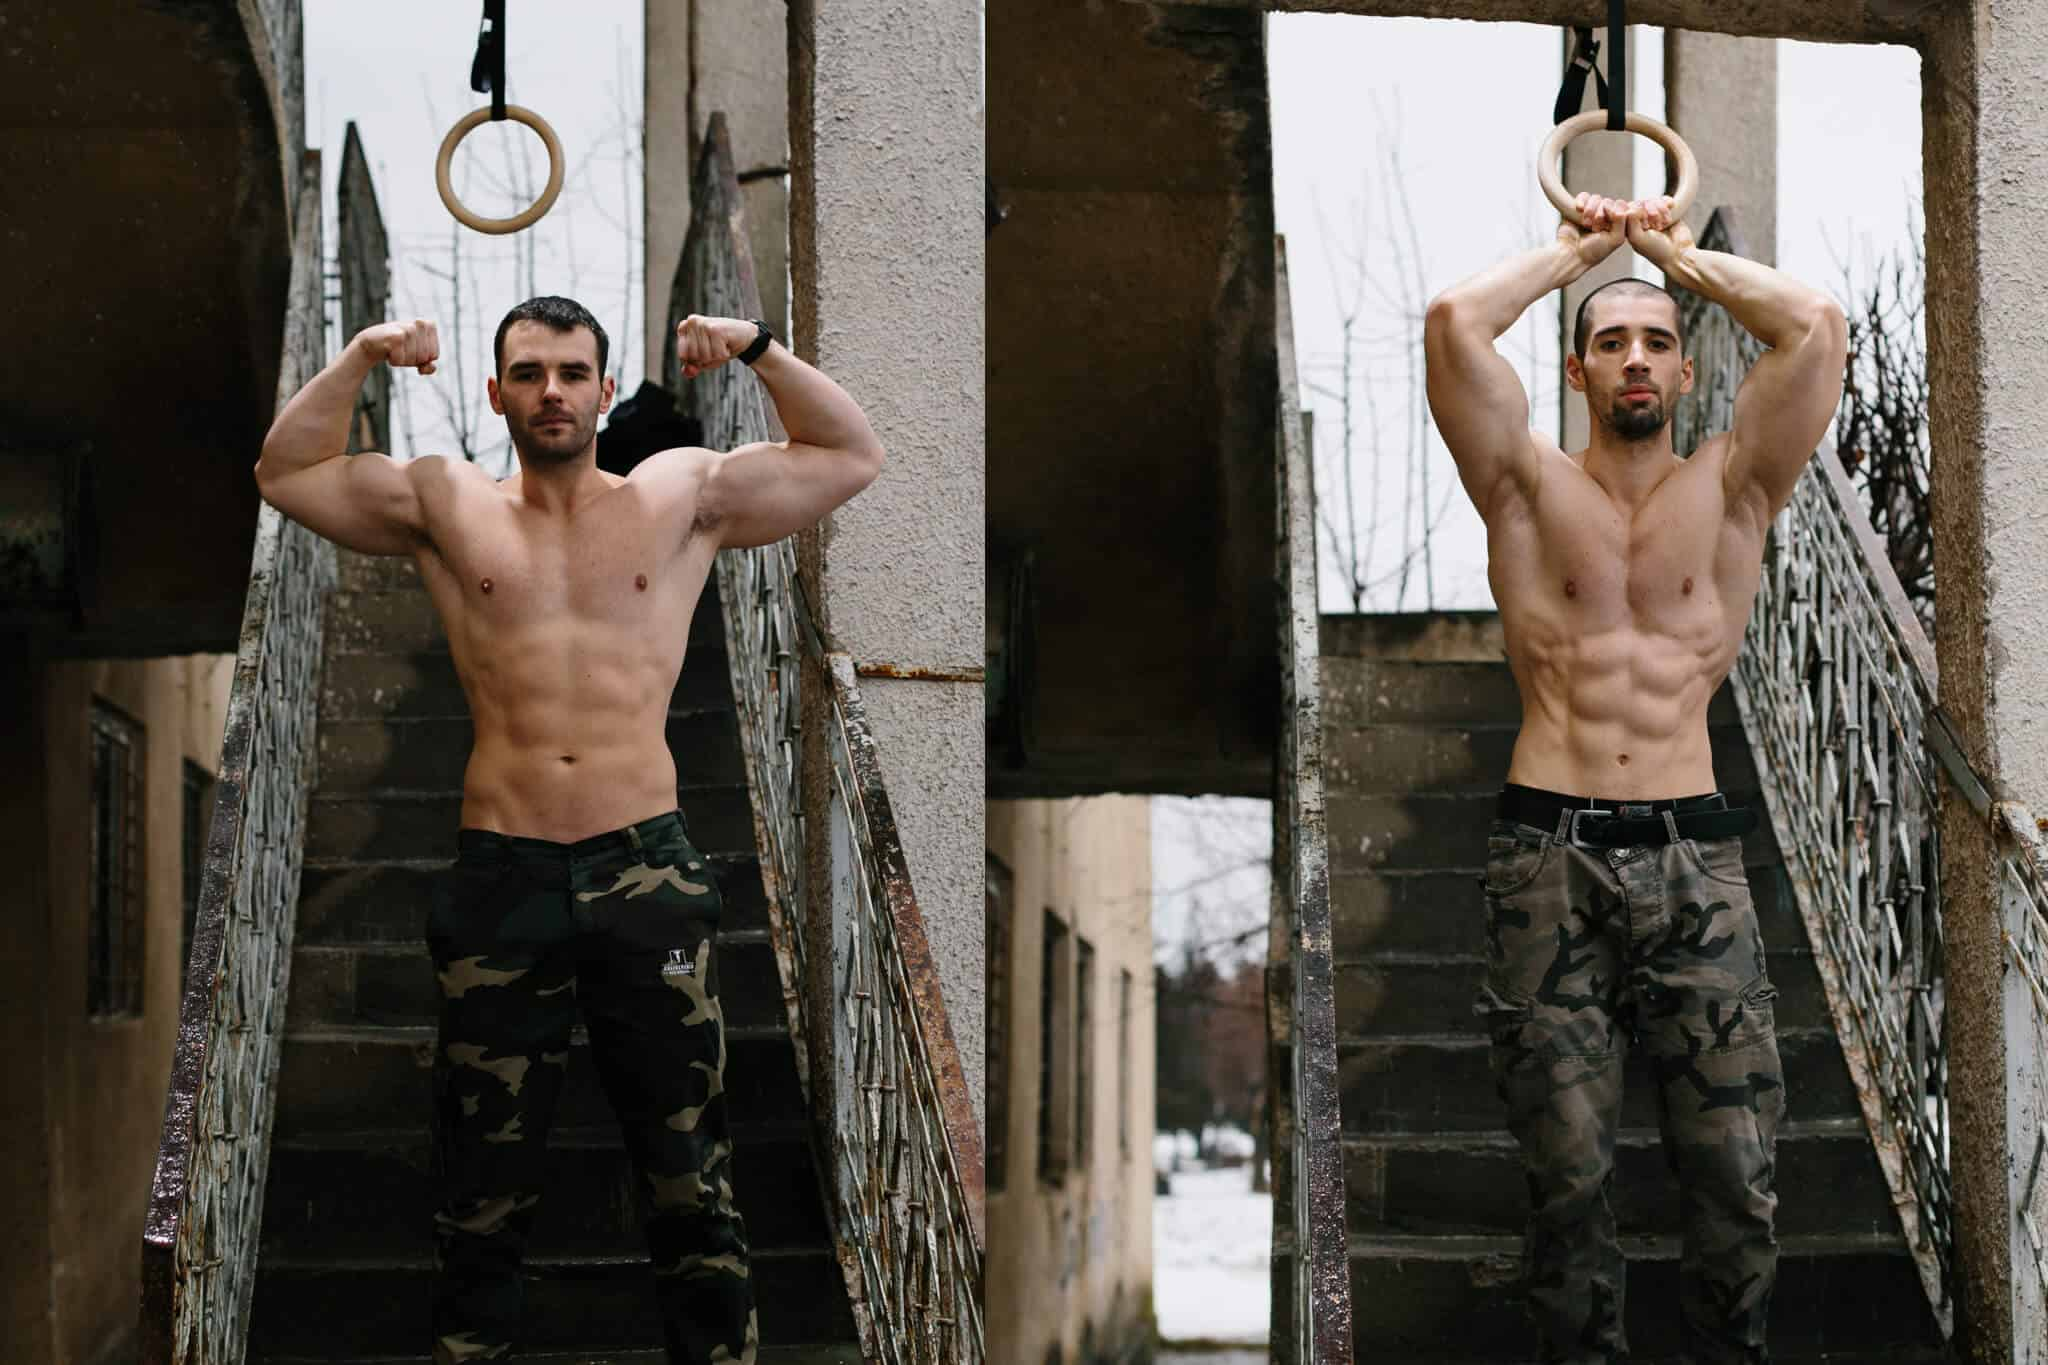 High Volume Calisthenics Workouts Benefits For Max Results Superset Workout Get Even Faster With This Intense Circuit